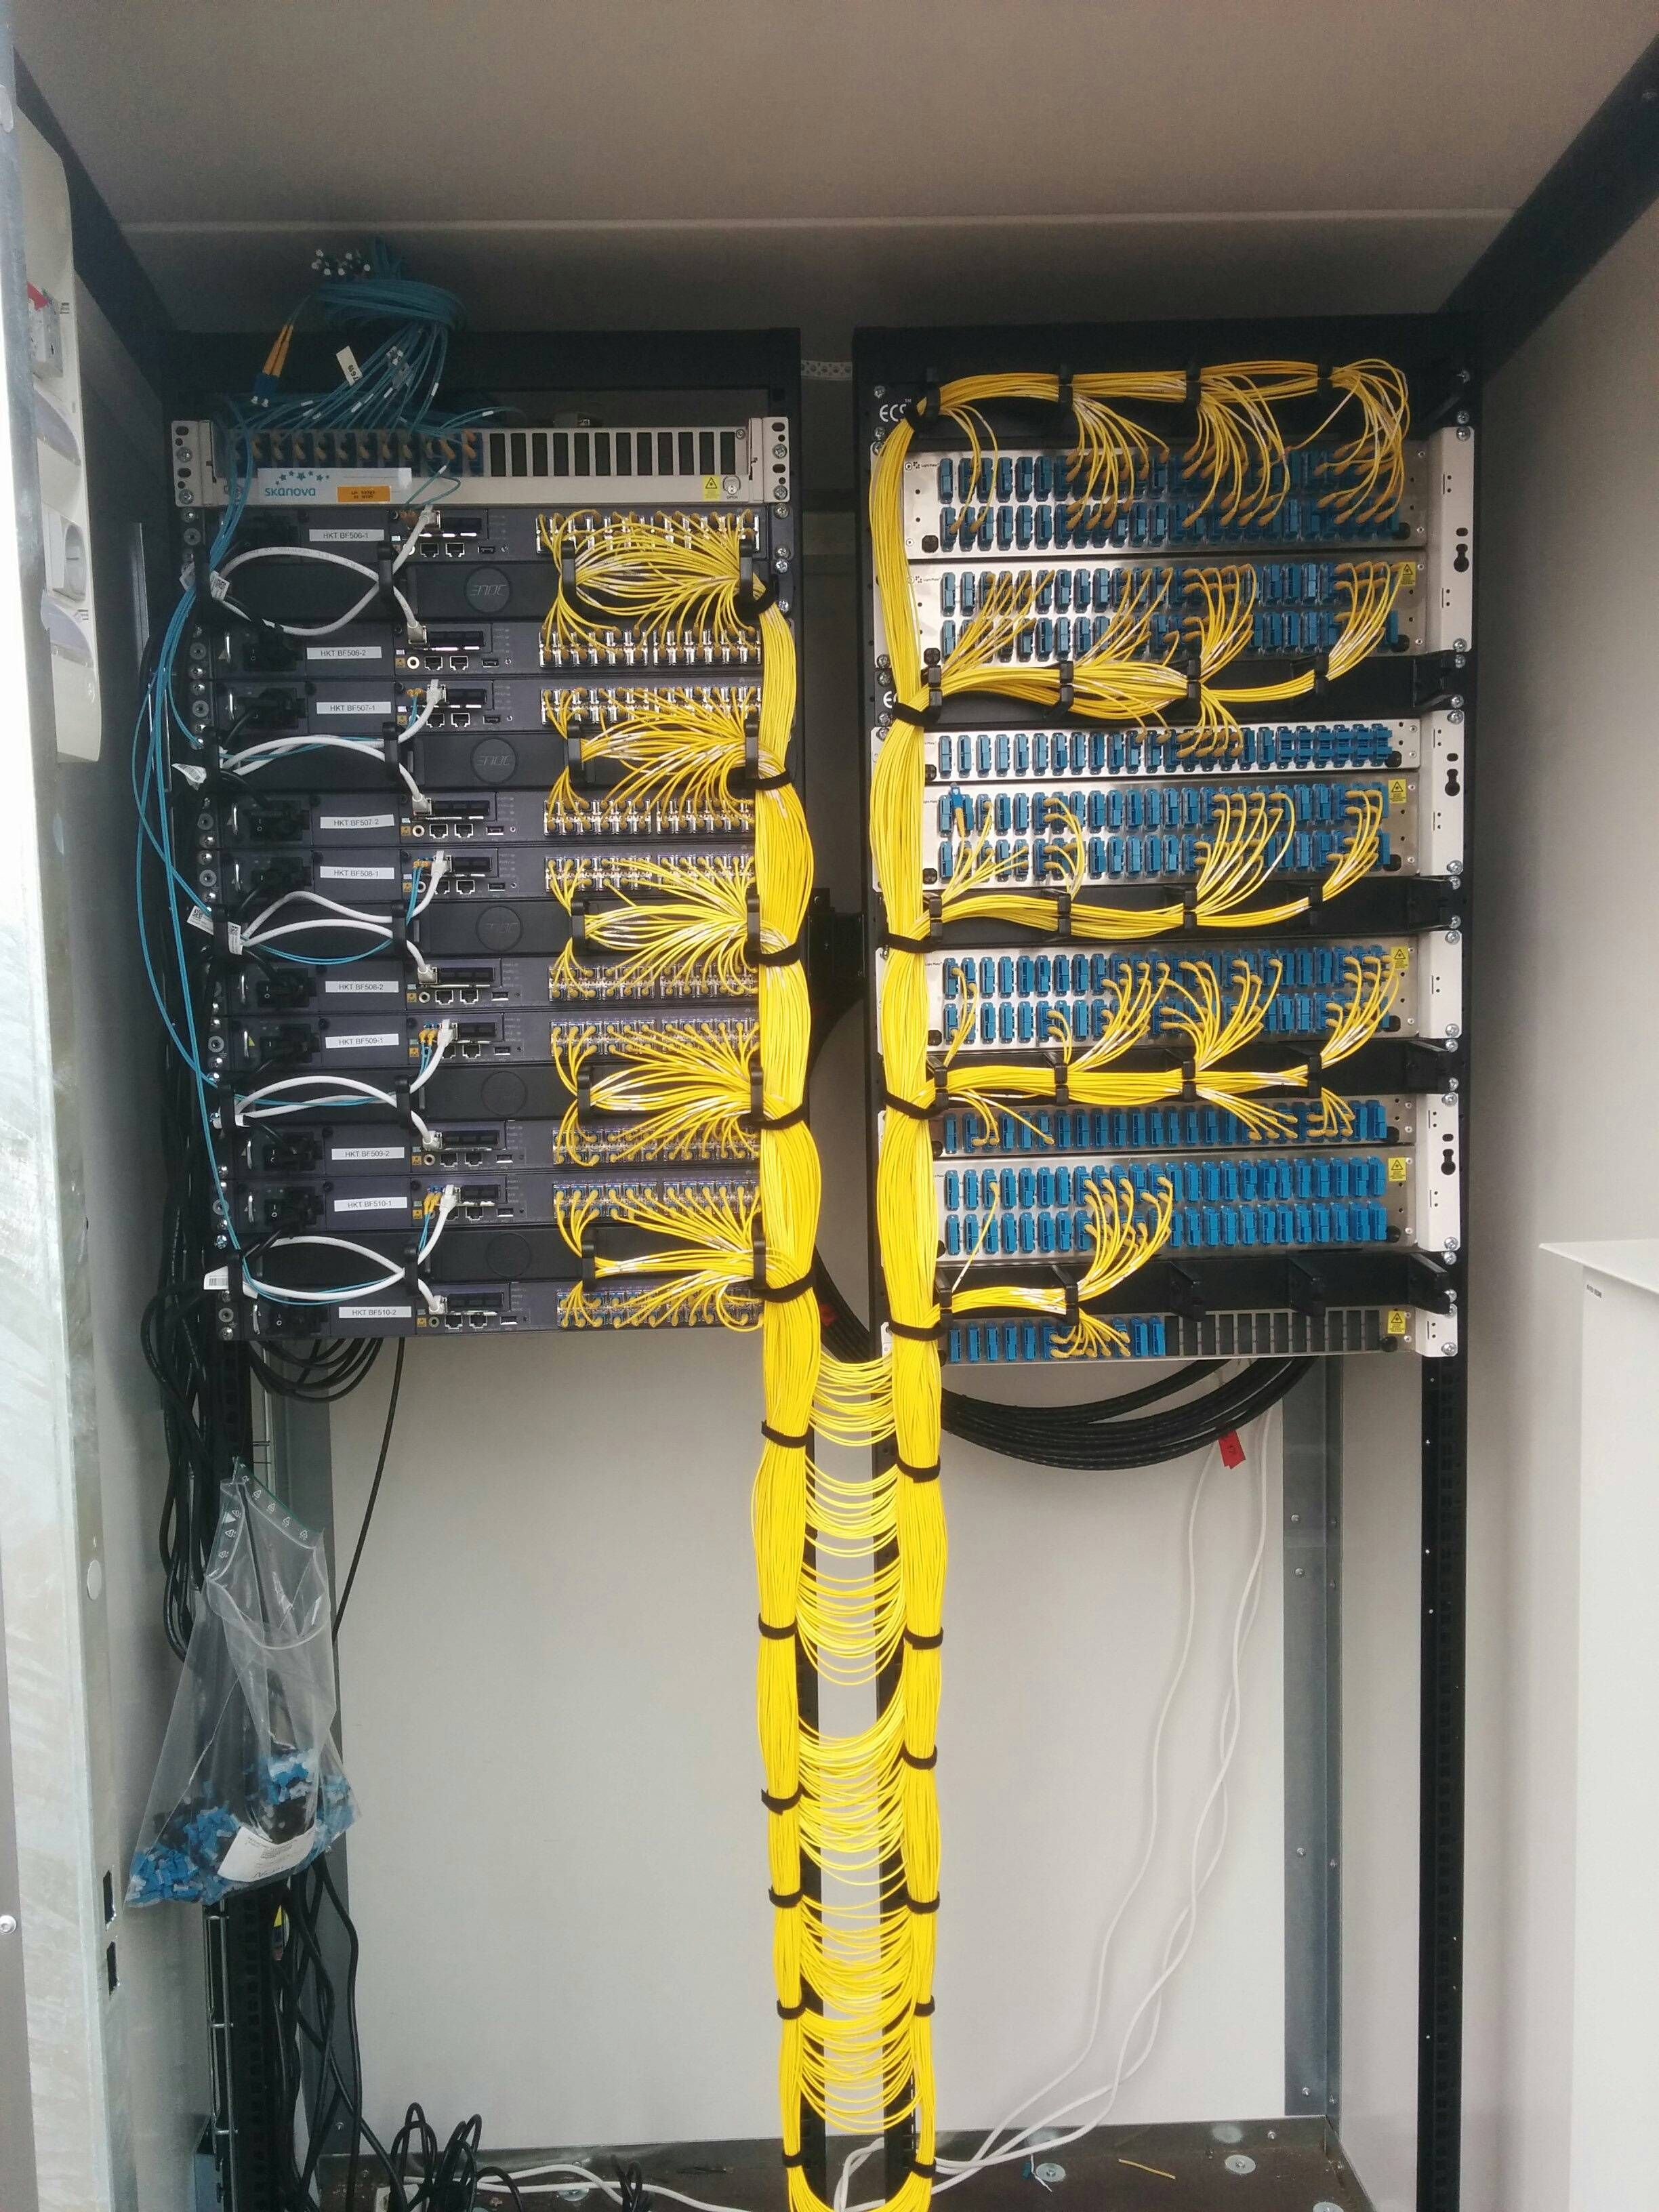 about structured wiring on pinterest home wiring fiber and cable wiring cable management on pinterest cable management cable and [ 2448 x 3264 Pixel ]